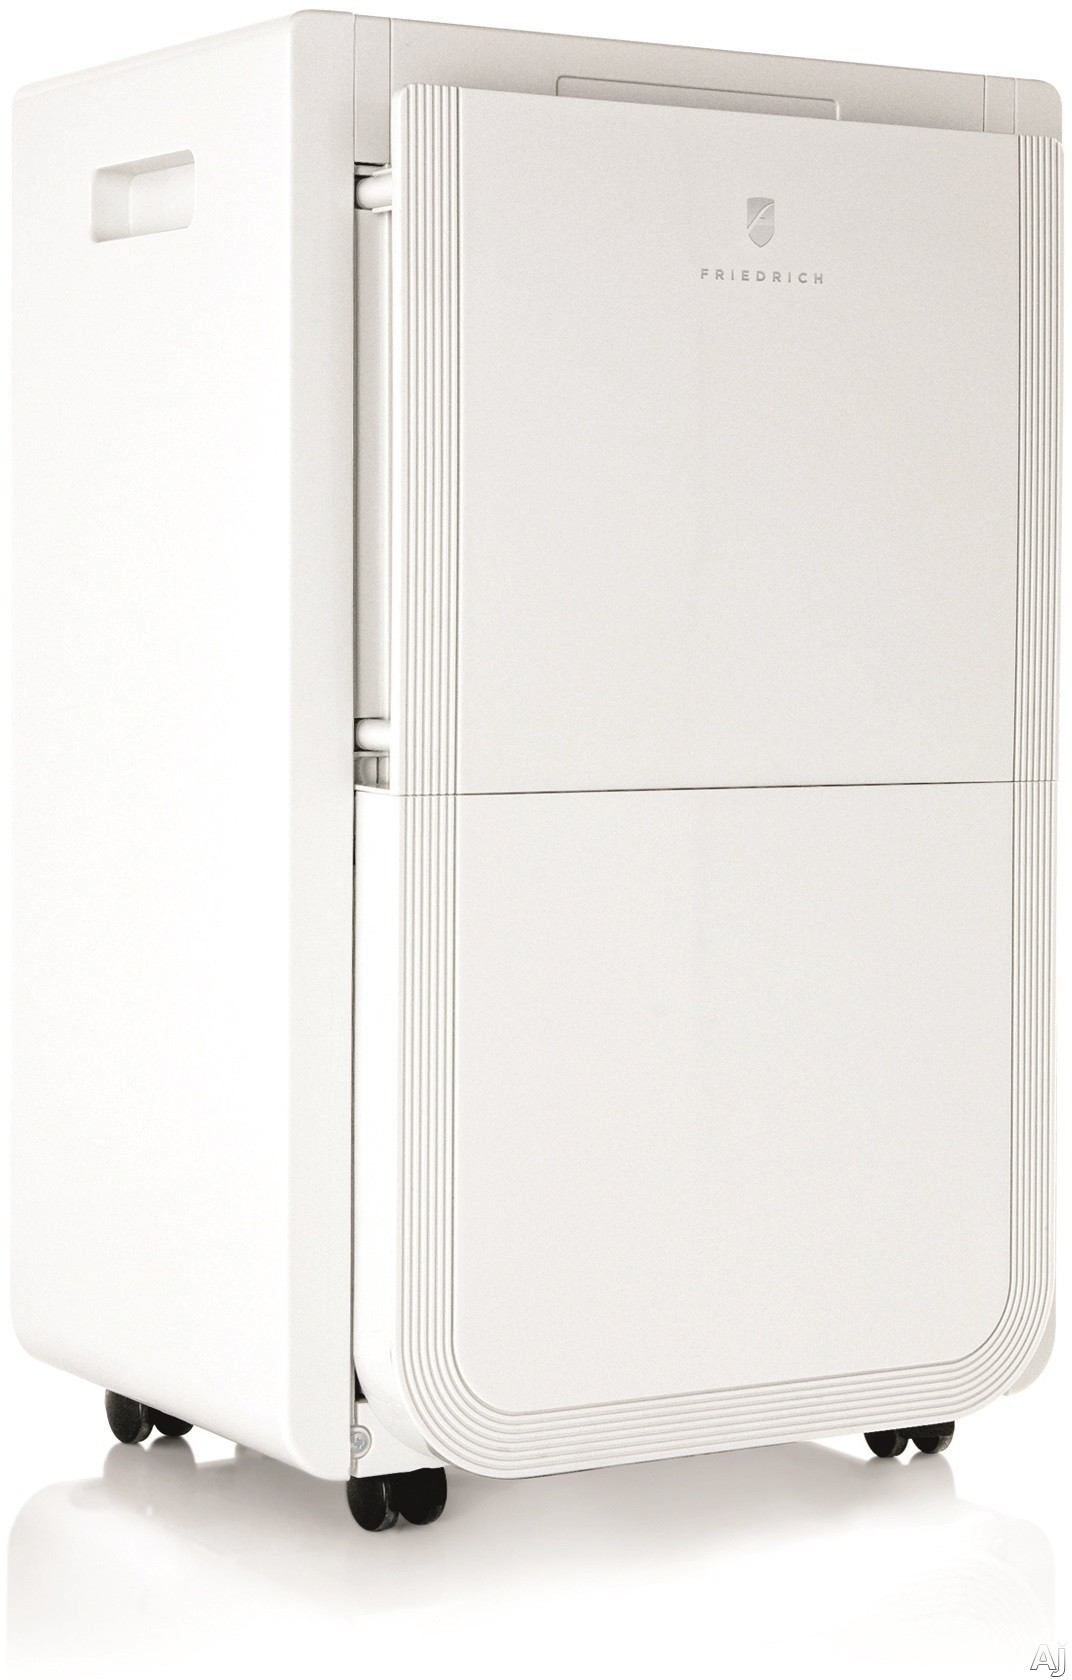 Friedrich D25BNP 25 Pint Capacity Dehumidifier with 2 Fan Speeds Electronic Controls Adjustable Humidity Settings and 2 500 sq. ft. Coverage Area